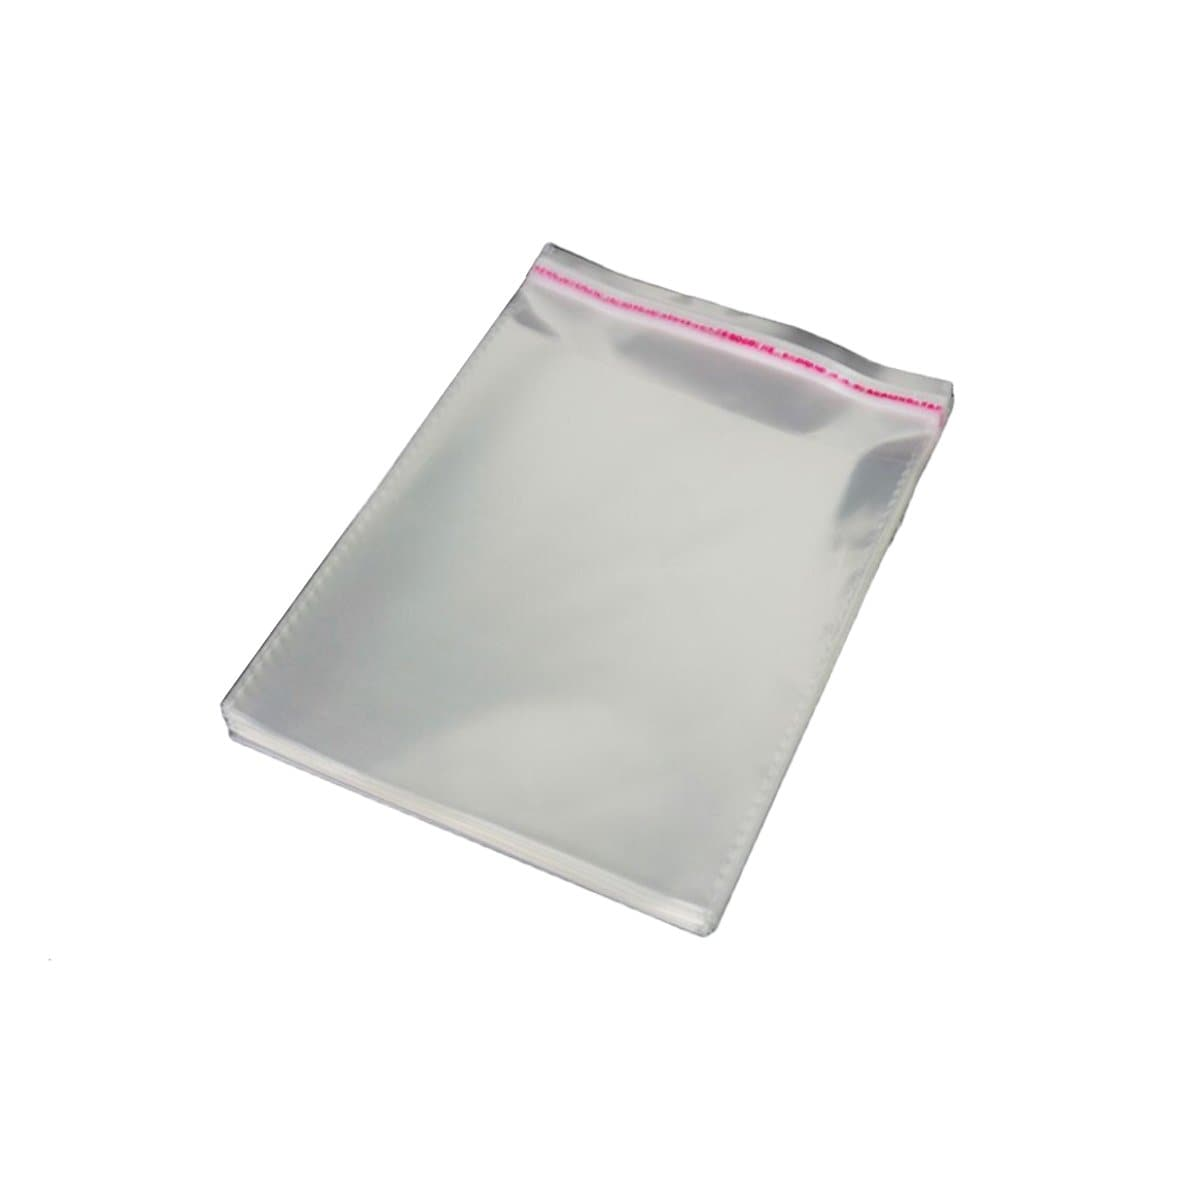 Clear OPP Bag with Self-Adhesive Seal, 30 Micron, C6 114 x 162mm, 50/pack